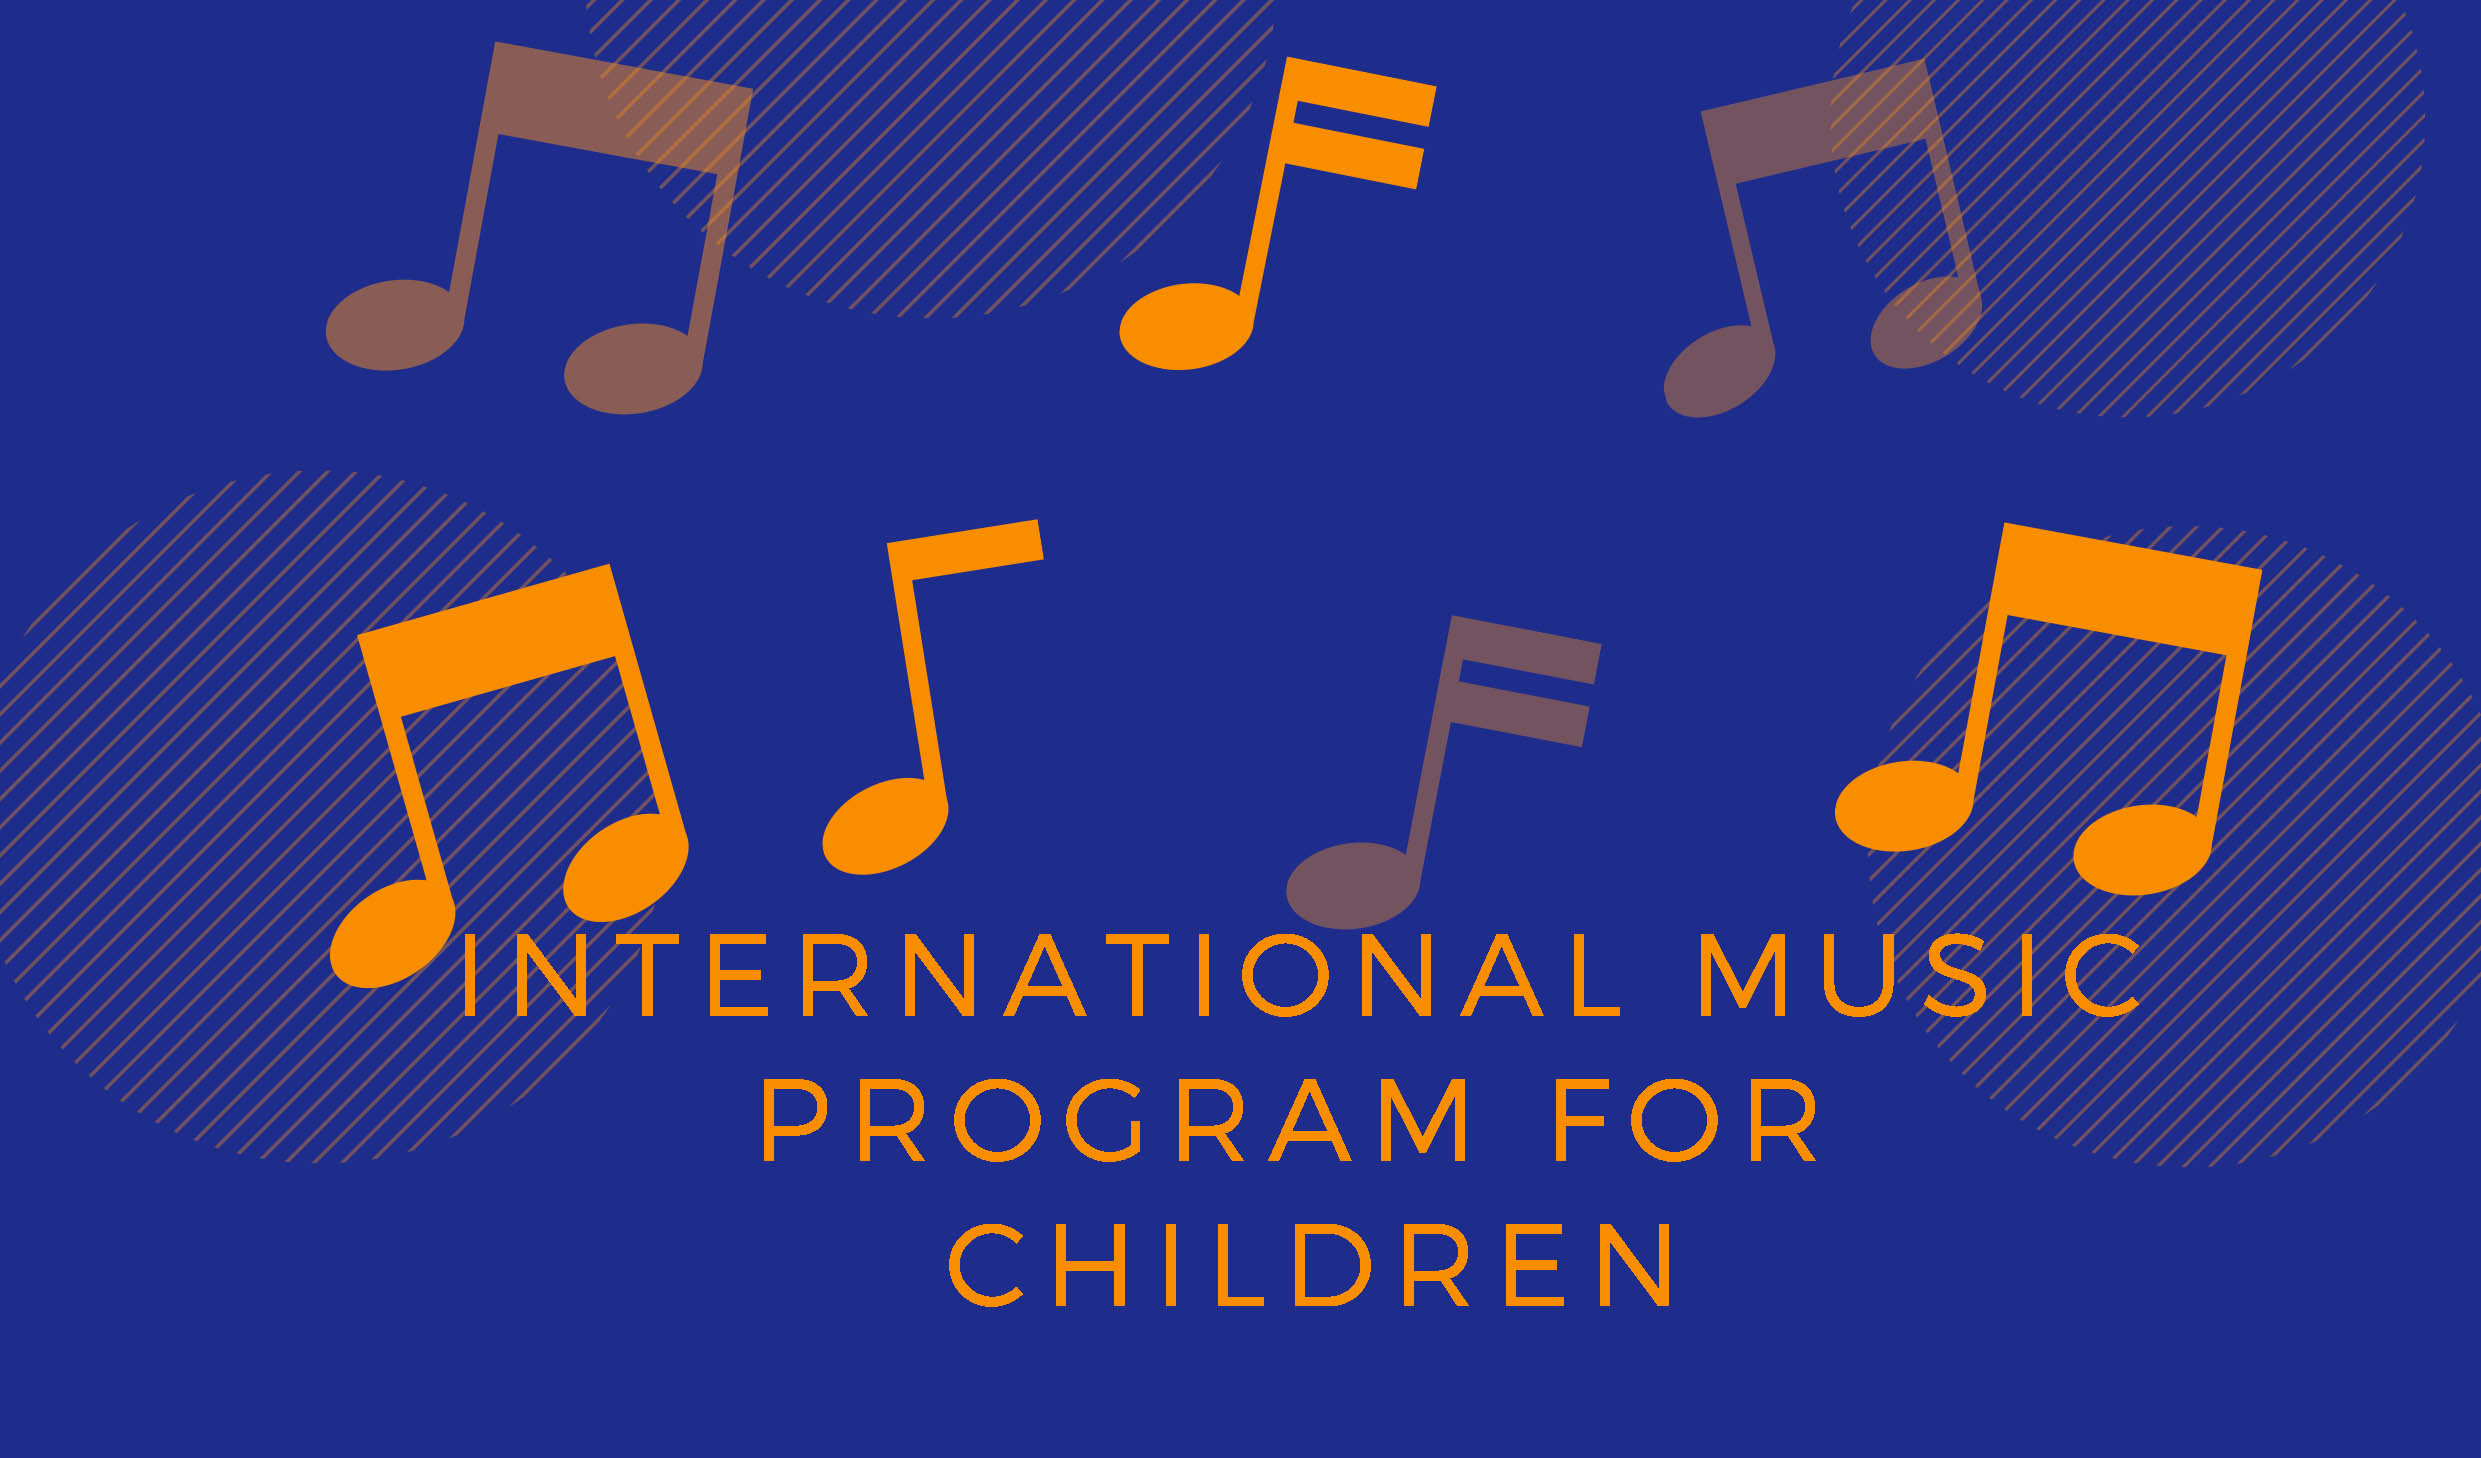 INTERNATIONAL MUSIC PROGRAM FOR CHILDREN